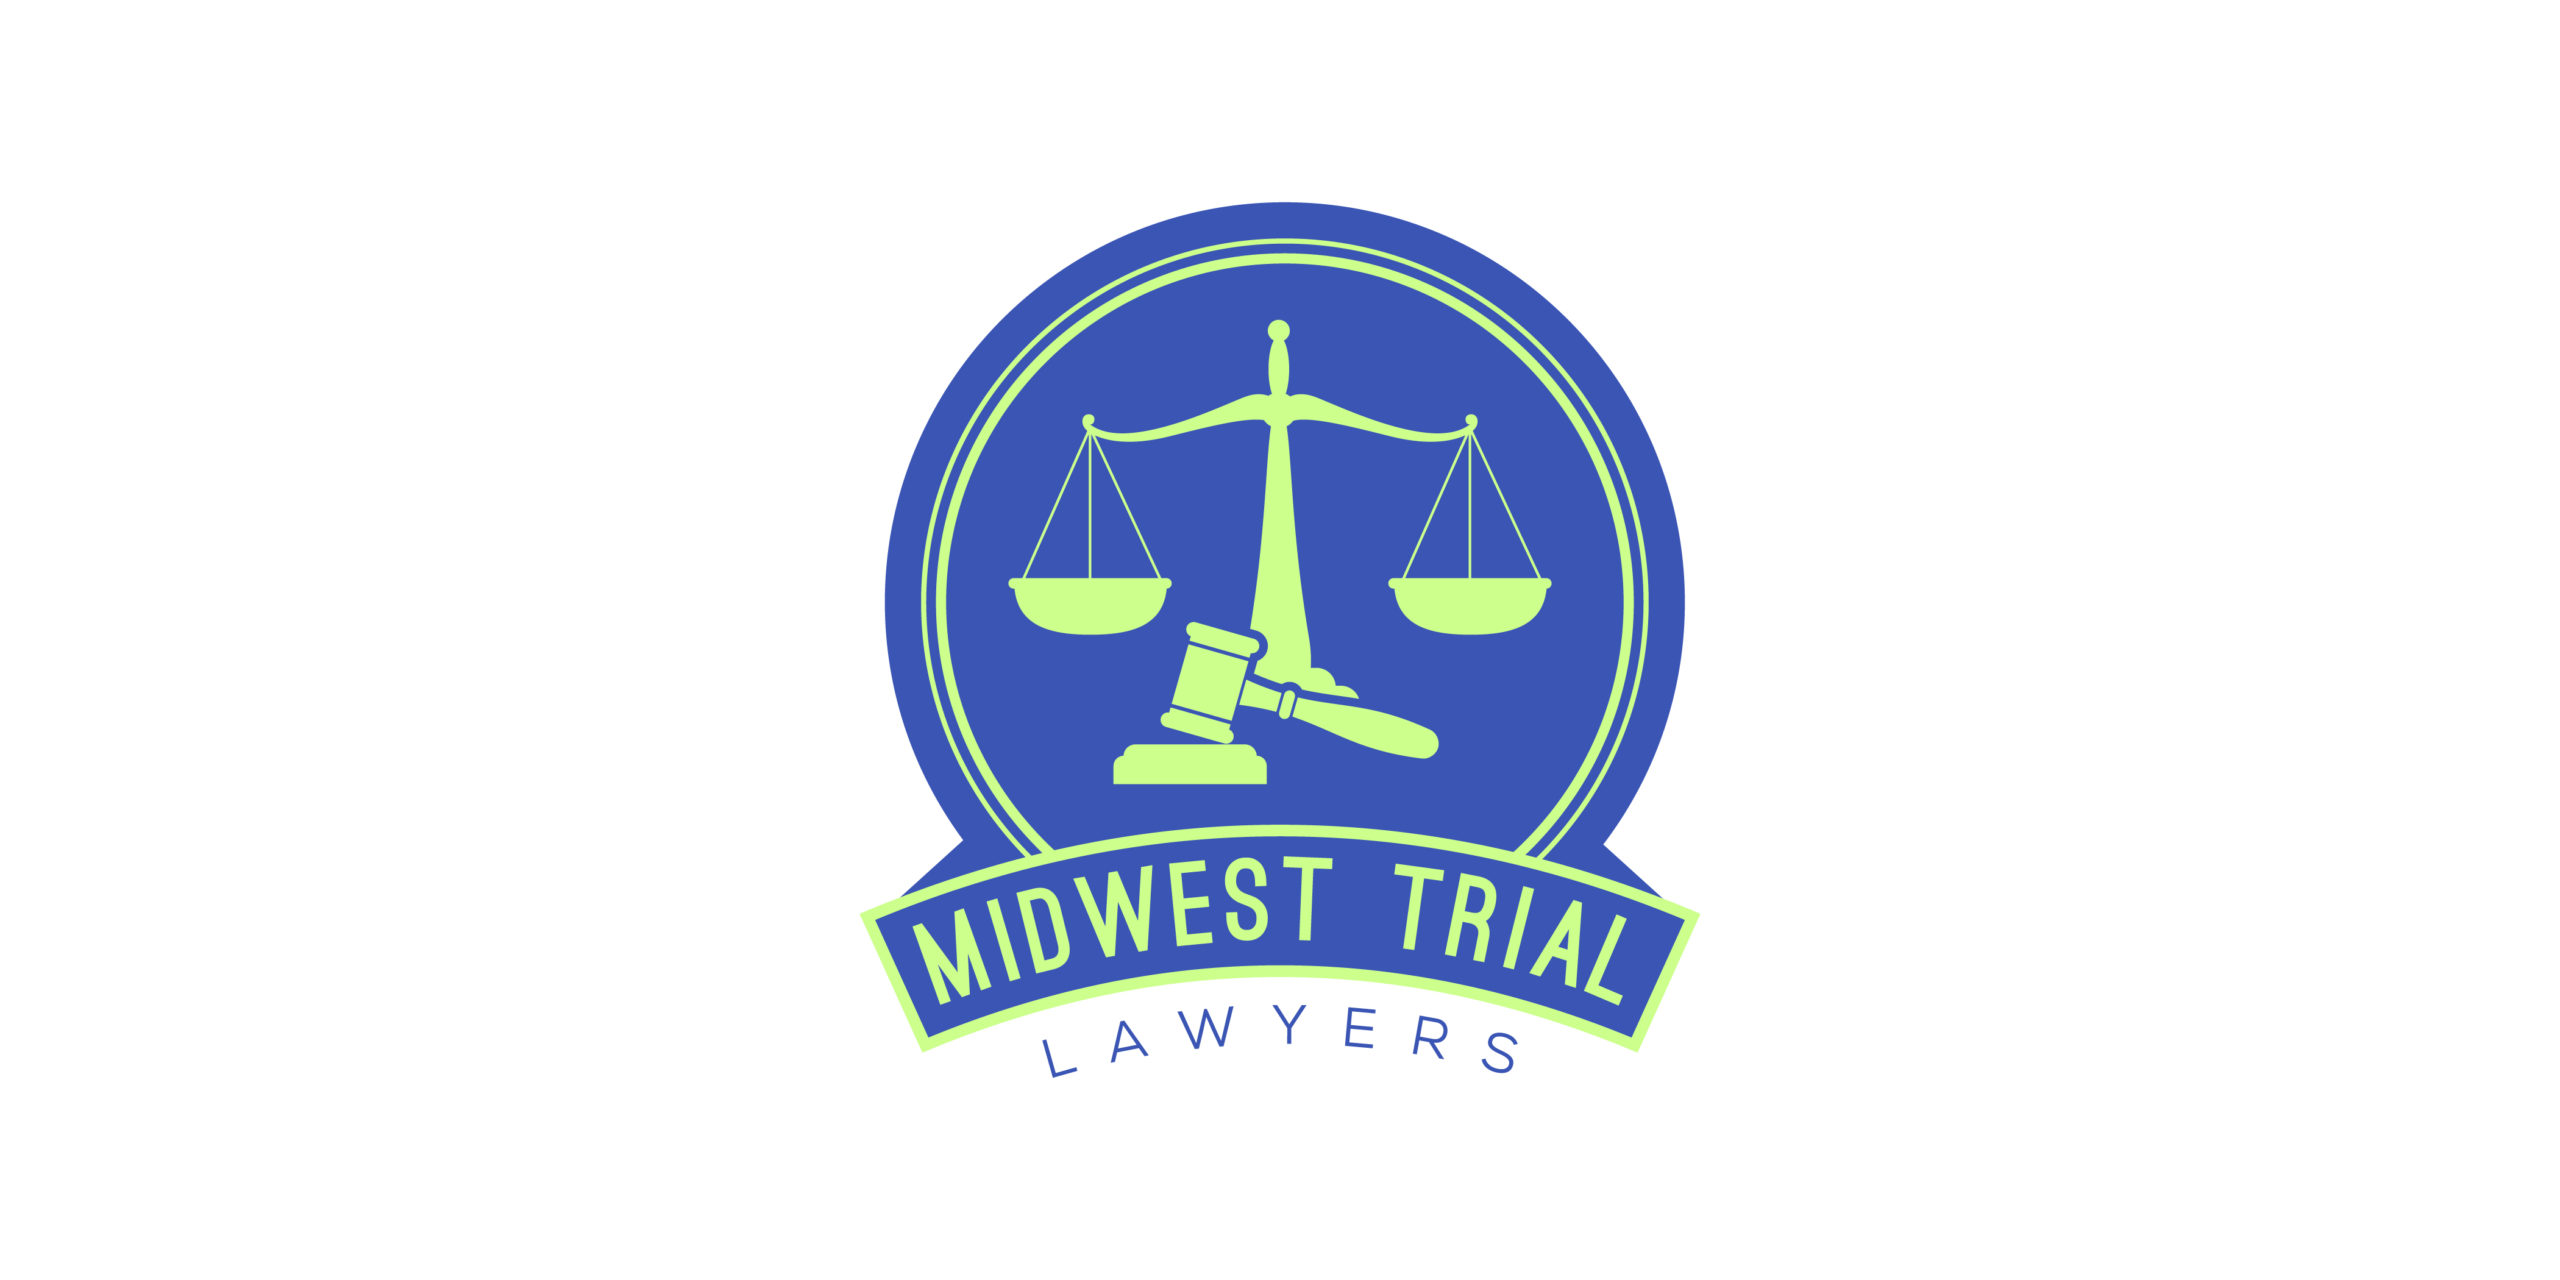 Midwest Trial Lawyers is an Overland Park, KS Personal Injury Lawyer Law Firm